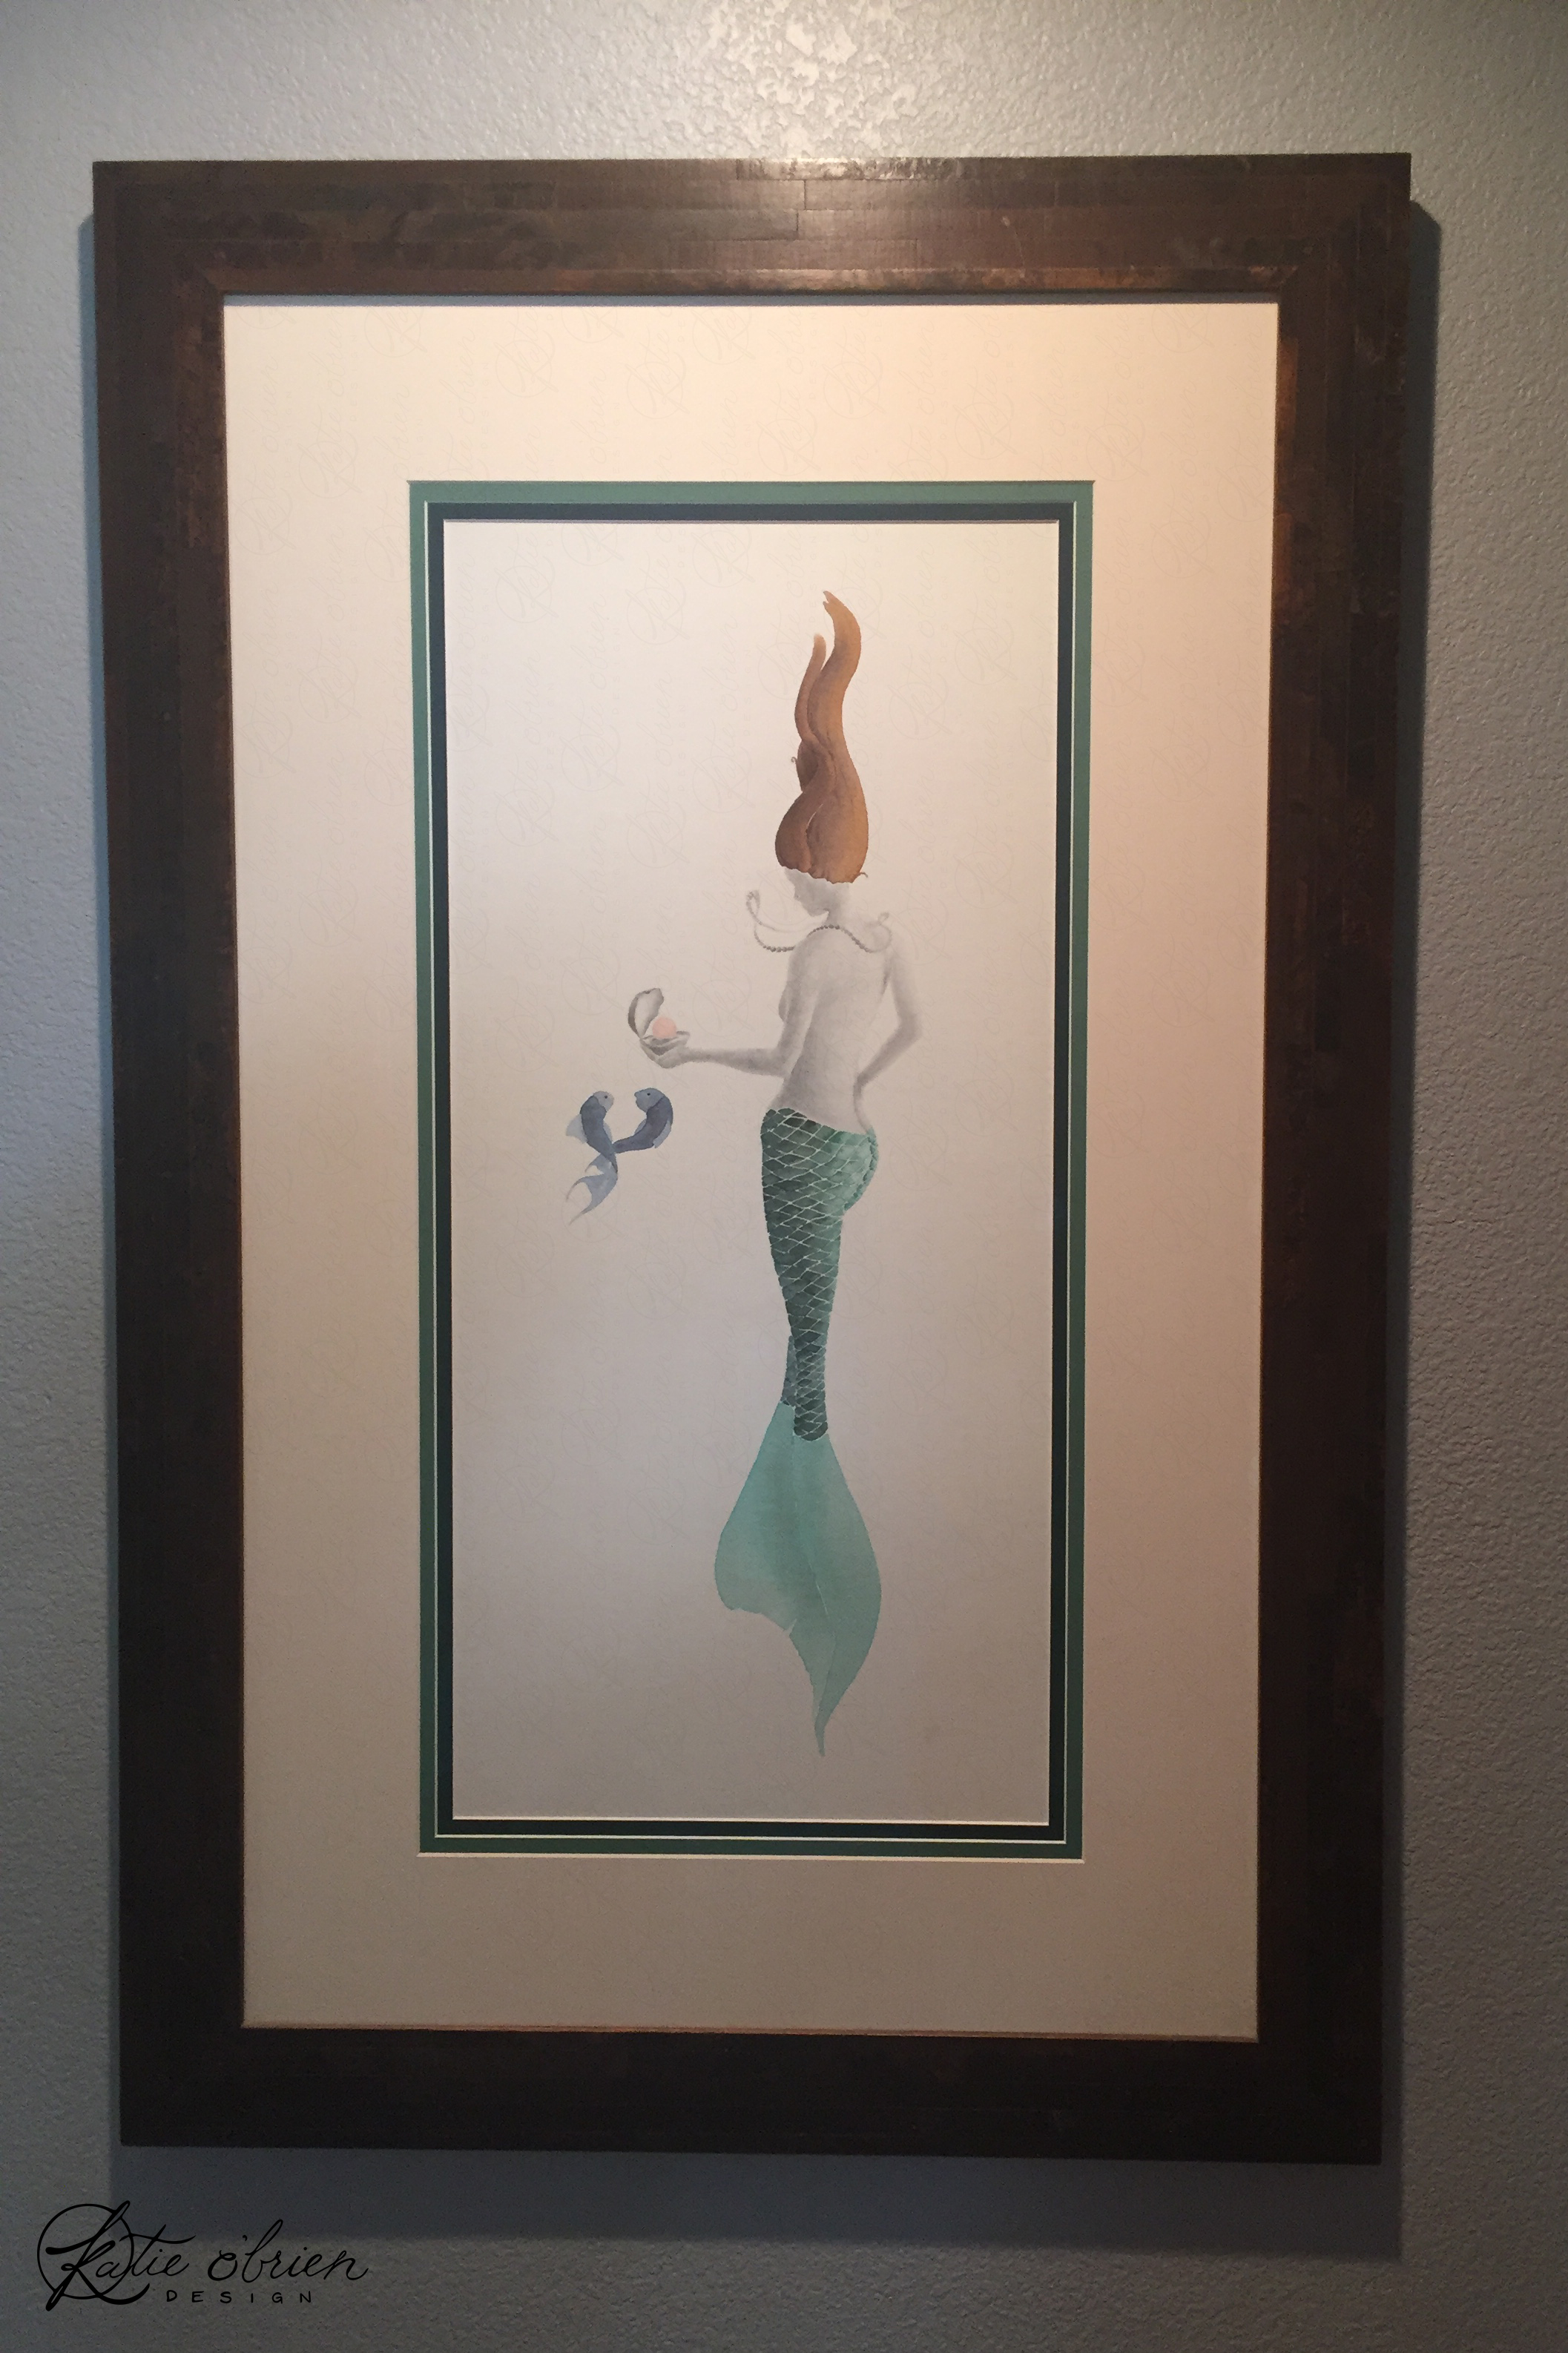 KOD - Mermaid Framed.jpg